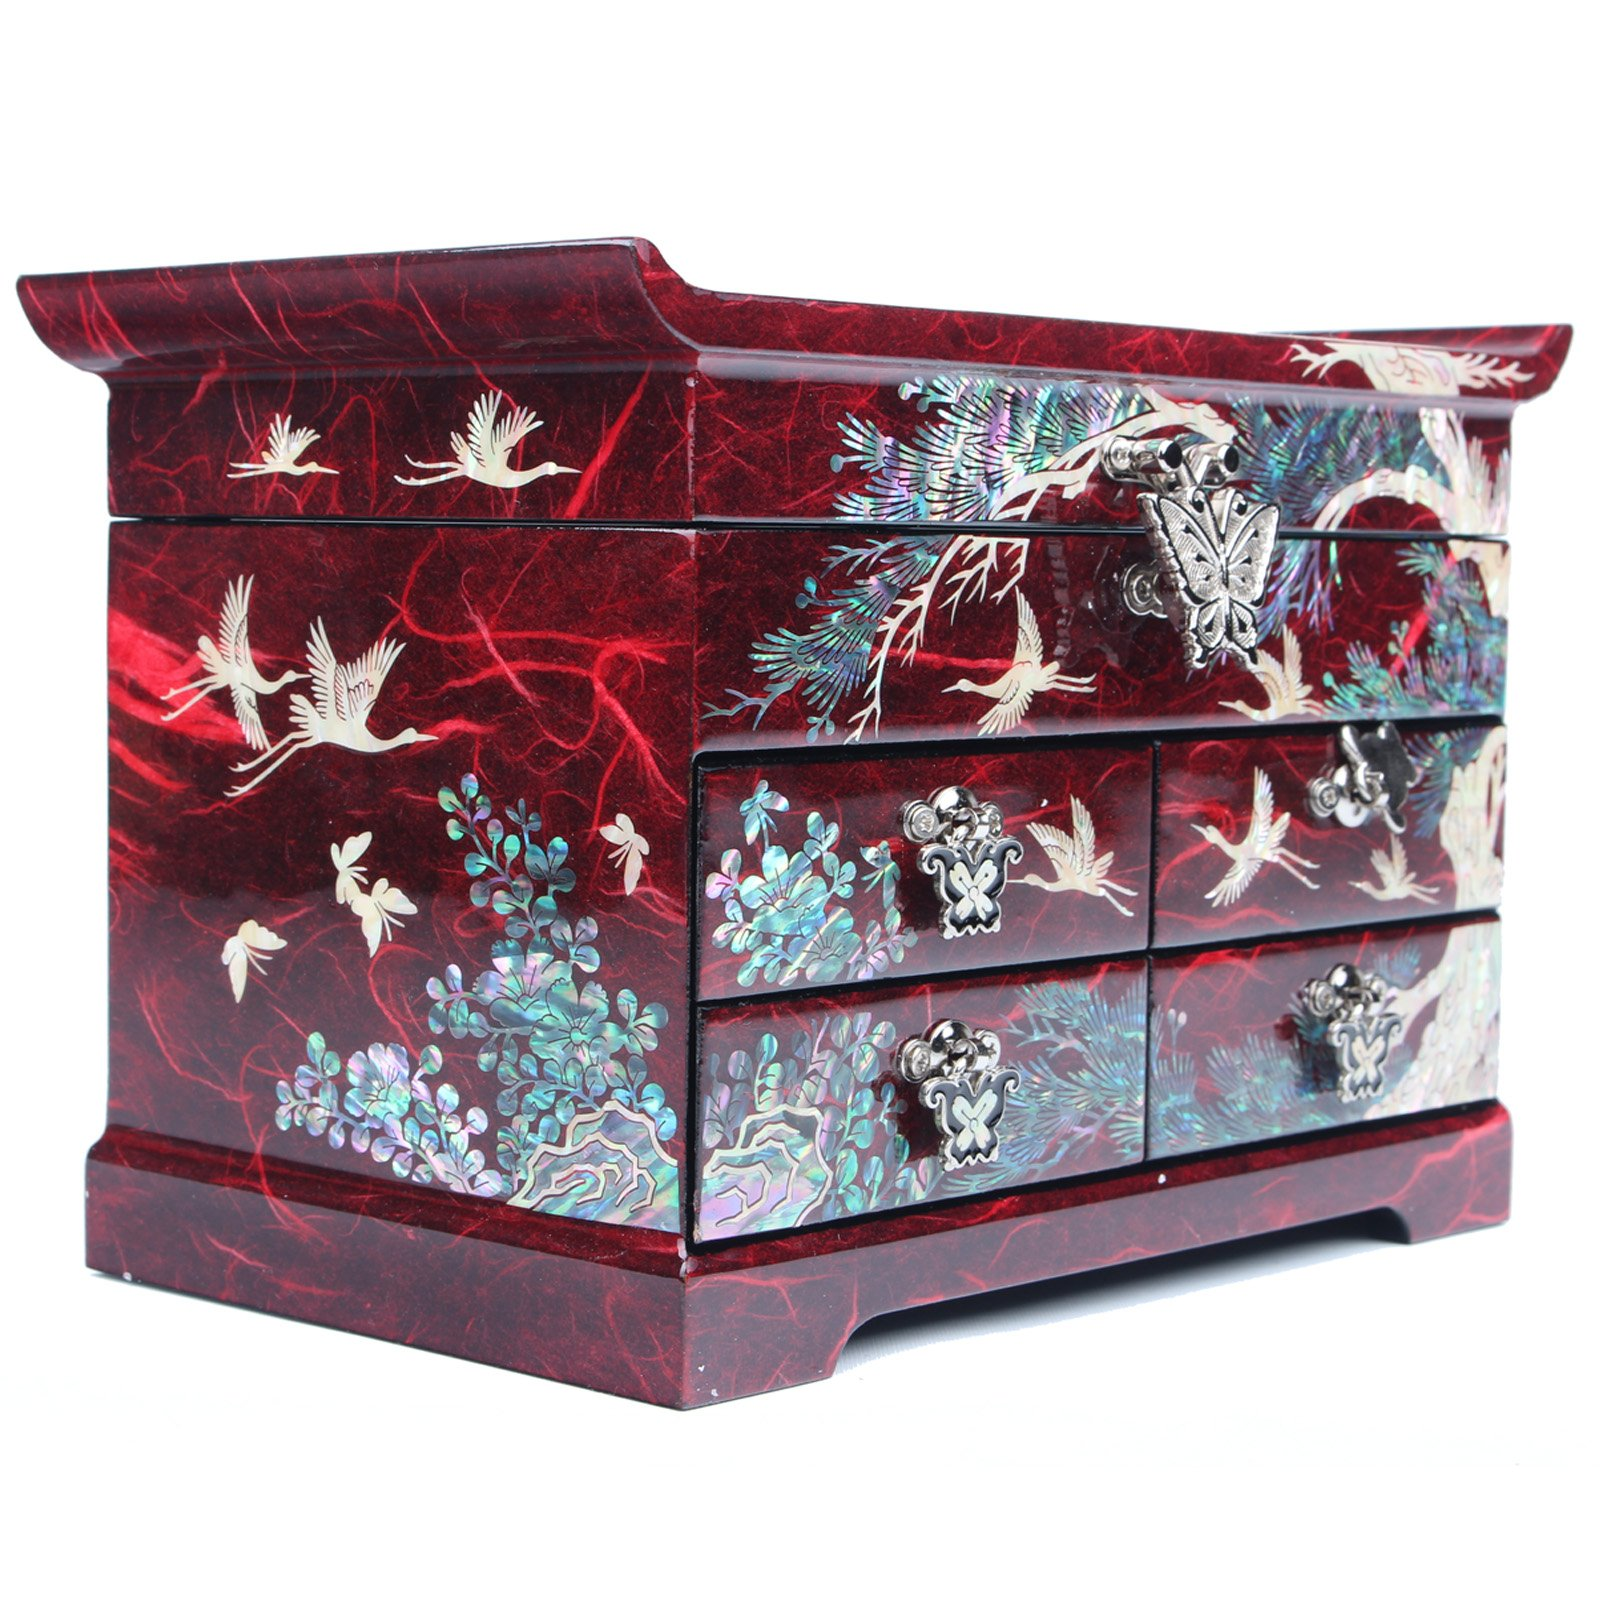 Jewelry Boxes Women Jewelry Organizer Box Gift 4 Drawers Mother Of Pearl Crane Made Korea HJD402 Red